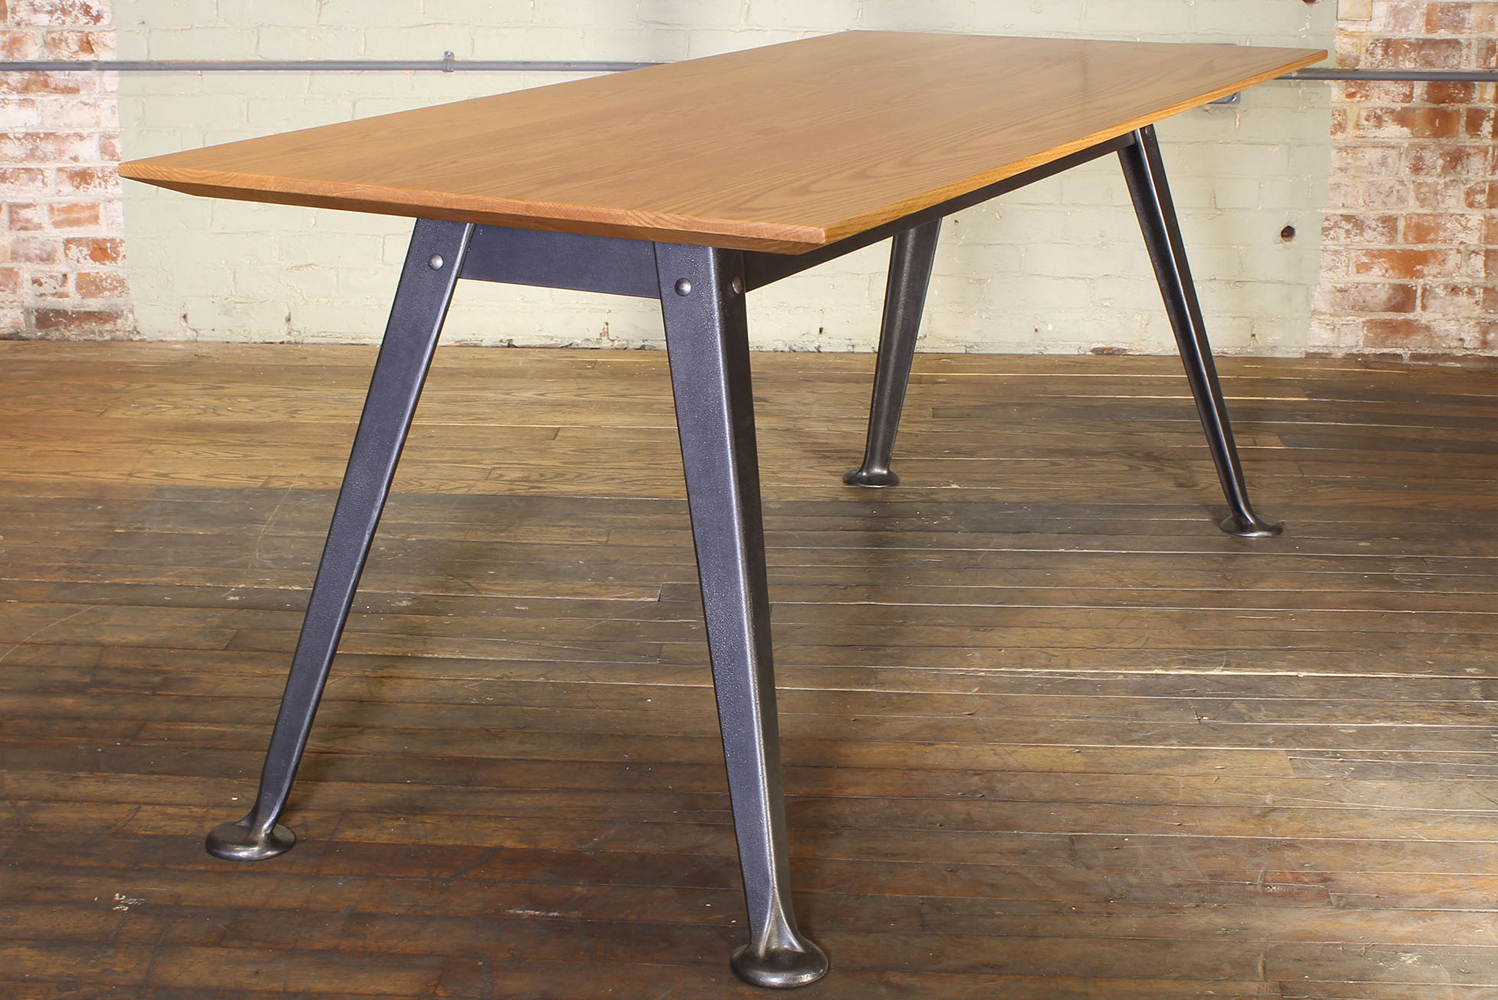 Introducing the Splay-leg table, which is part of the Originals collection by Get Back.